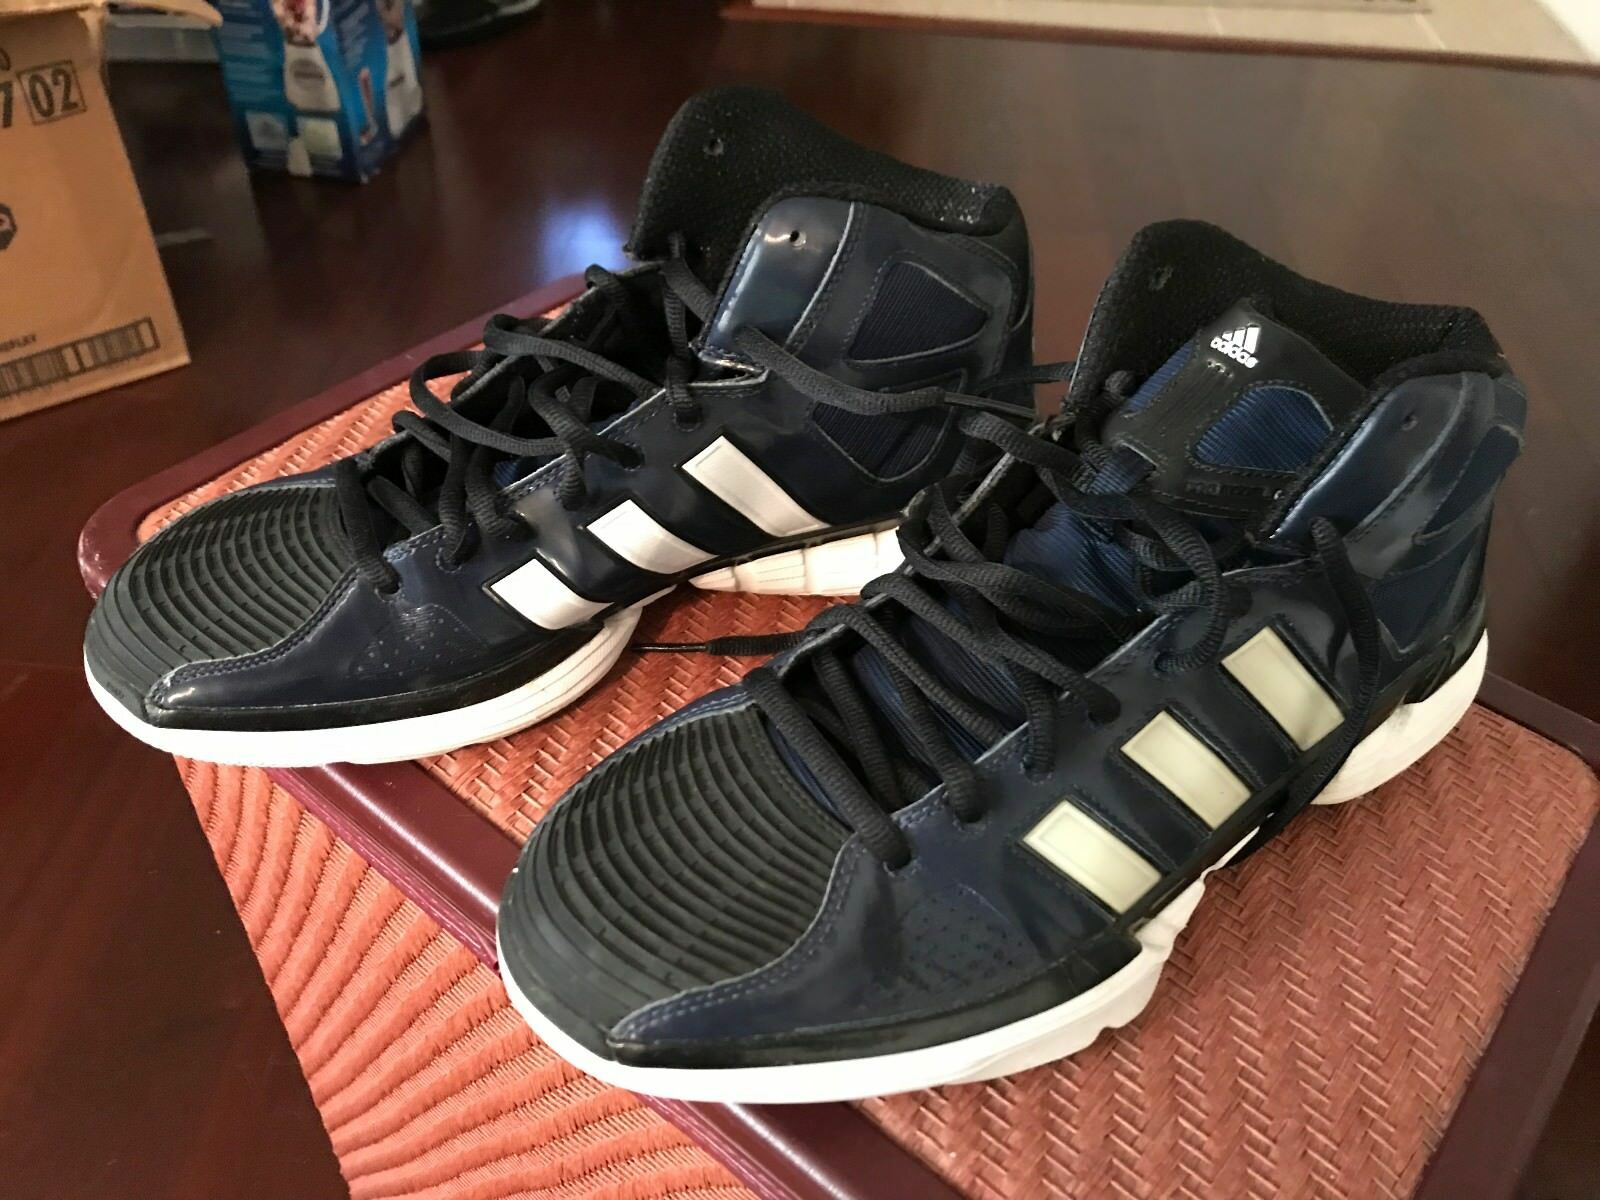 ADIDAS - NAVY BLUE AND WHITE